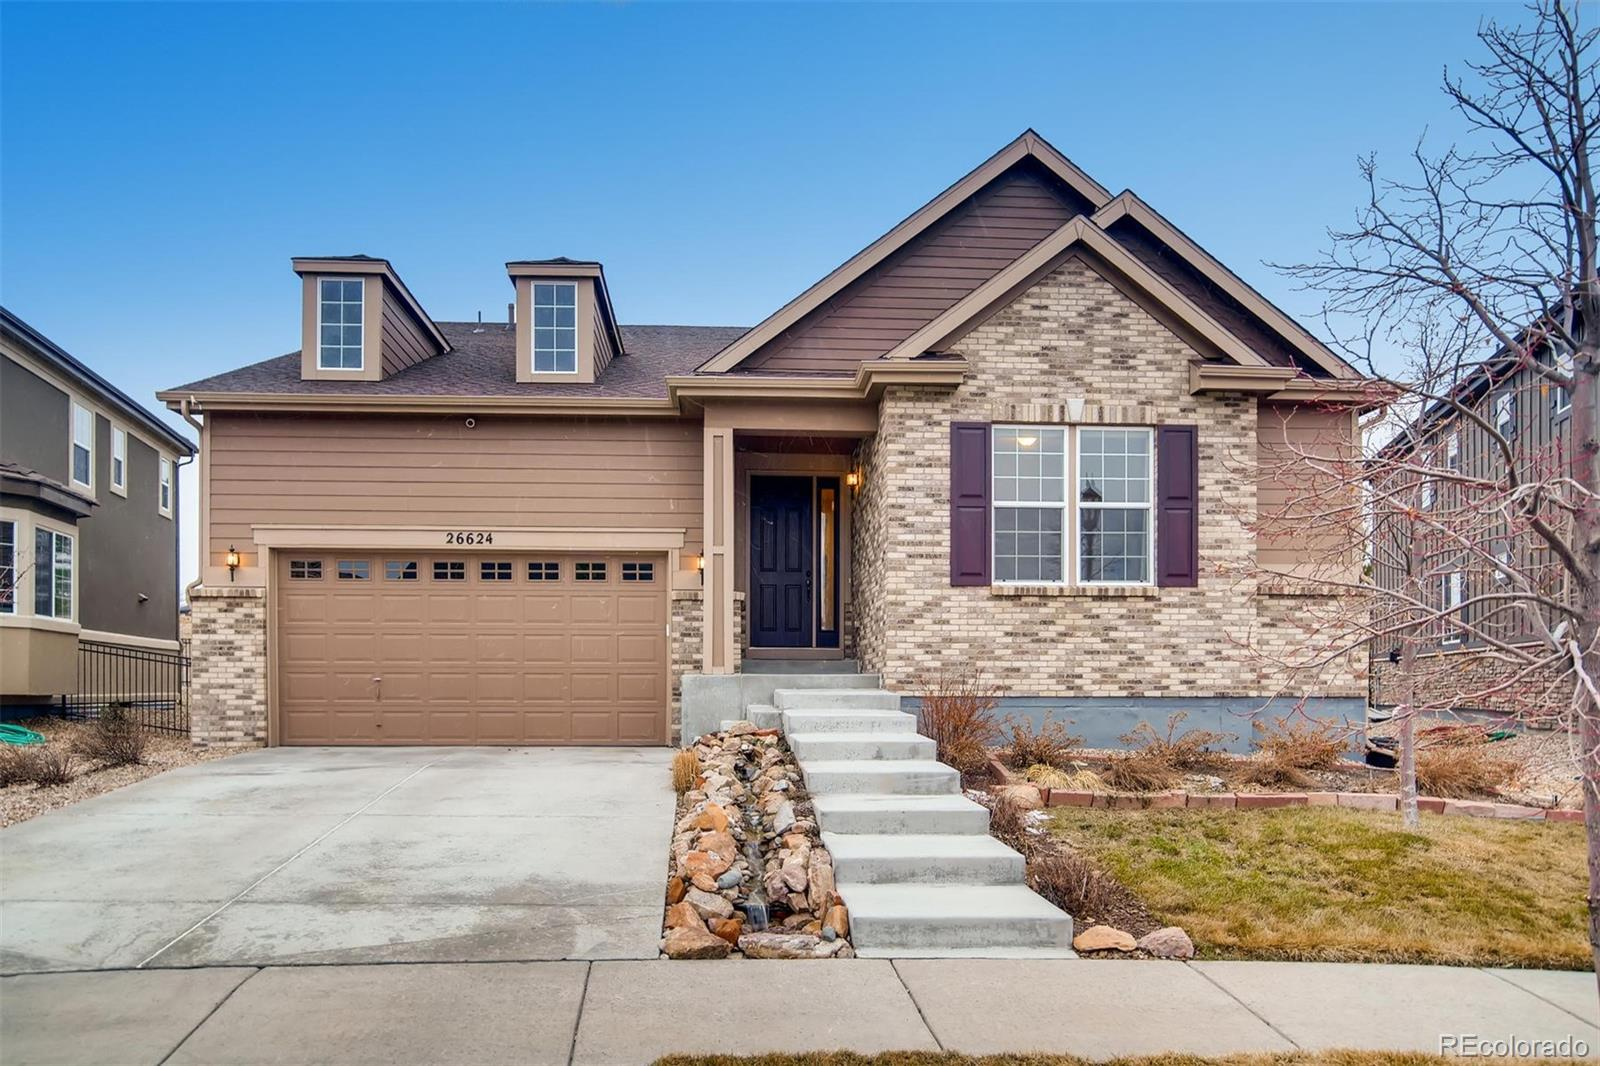 26624 E Canyon Avenue, Aurora CO 80016